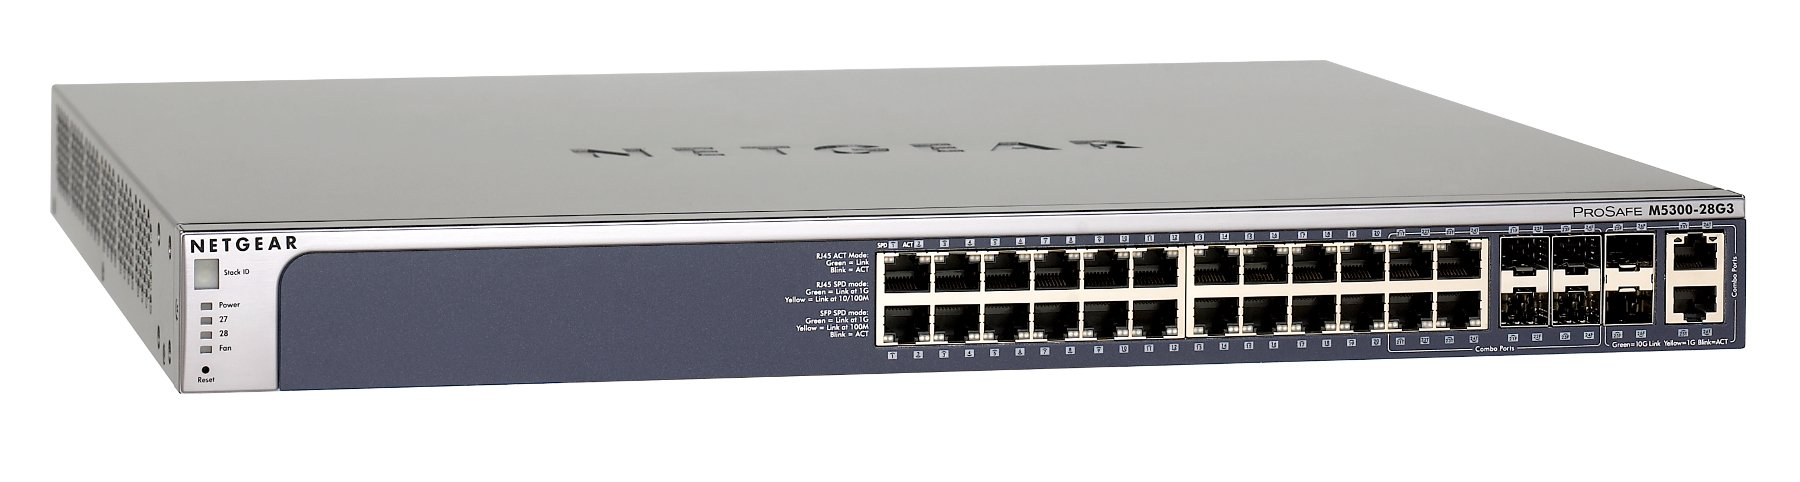 Stackable Gigabit L2/L3 Managed Switches